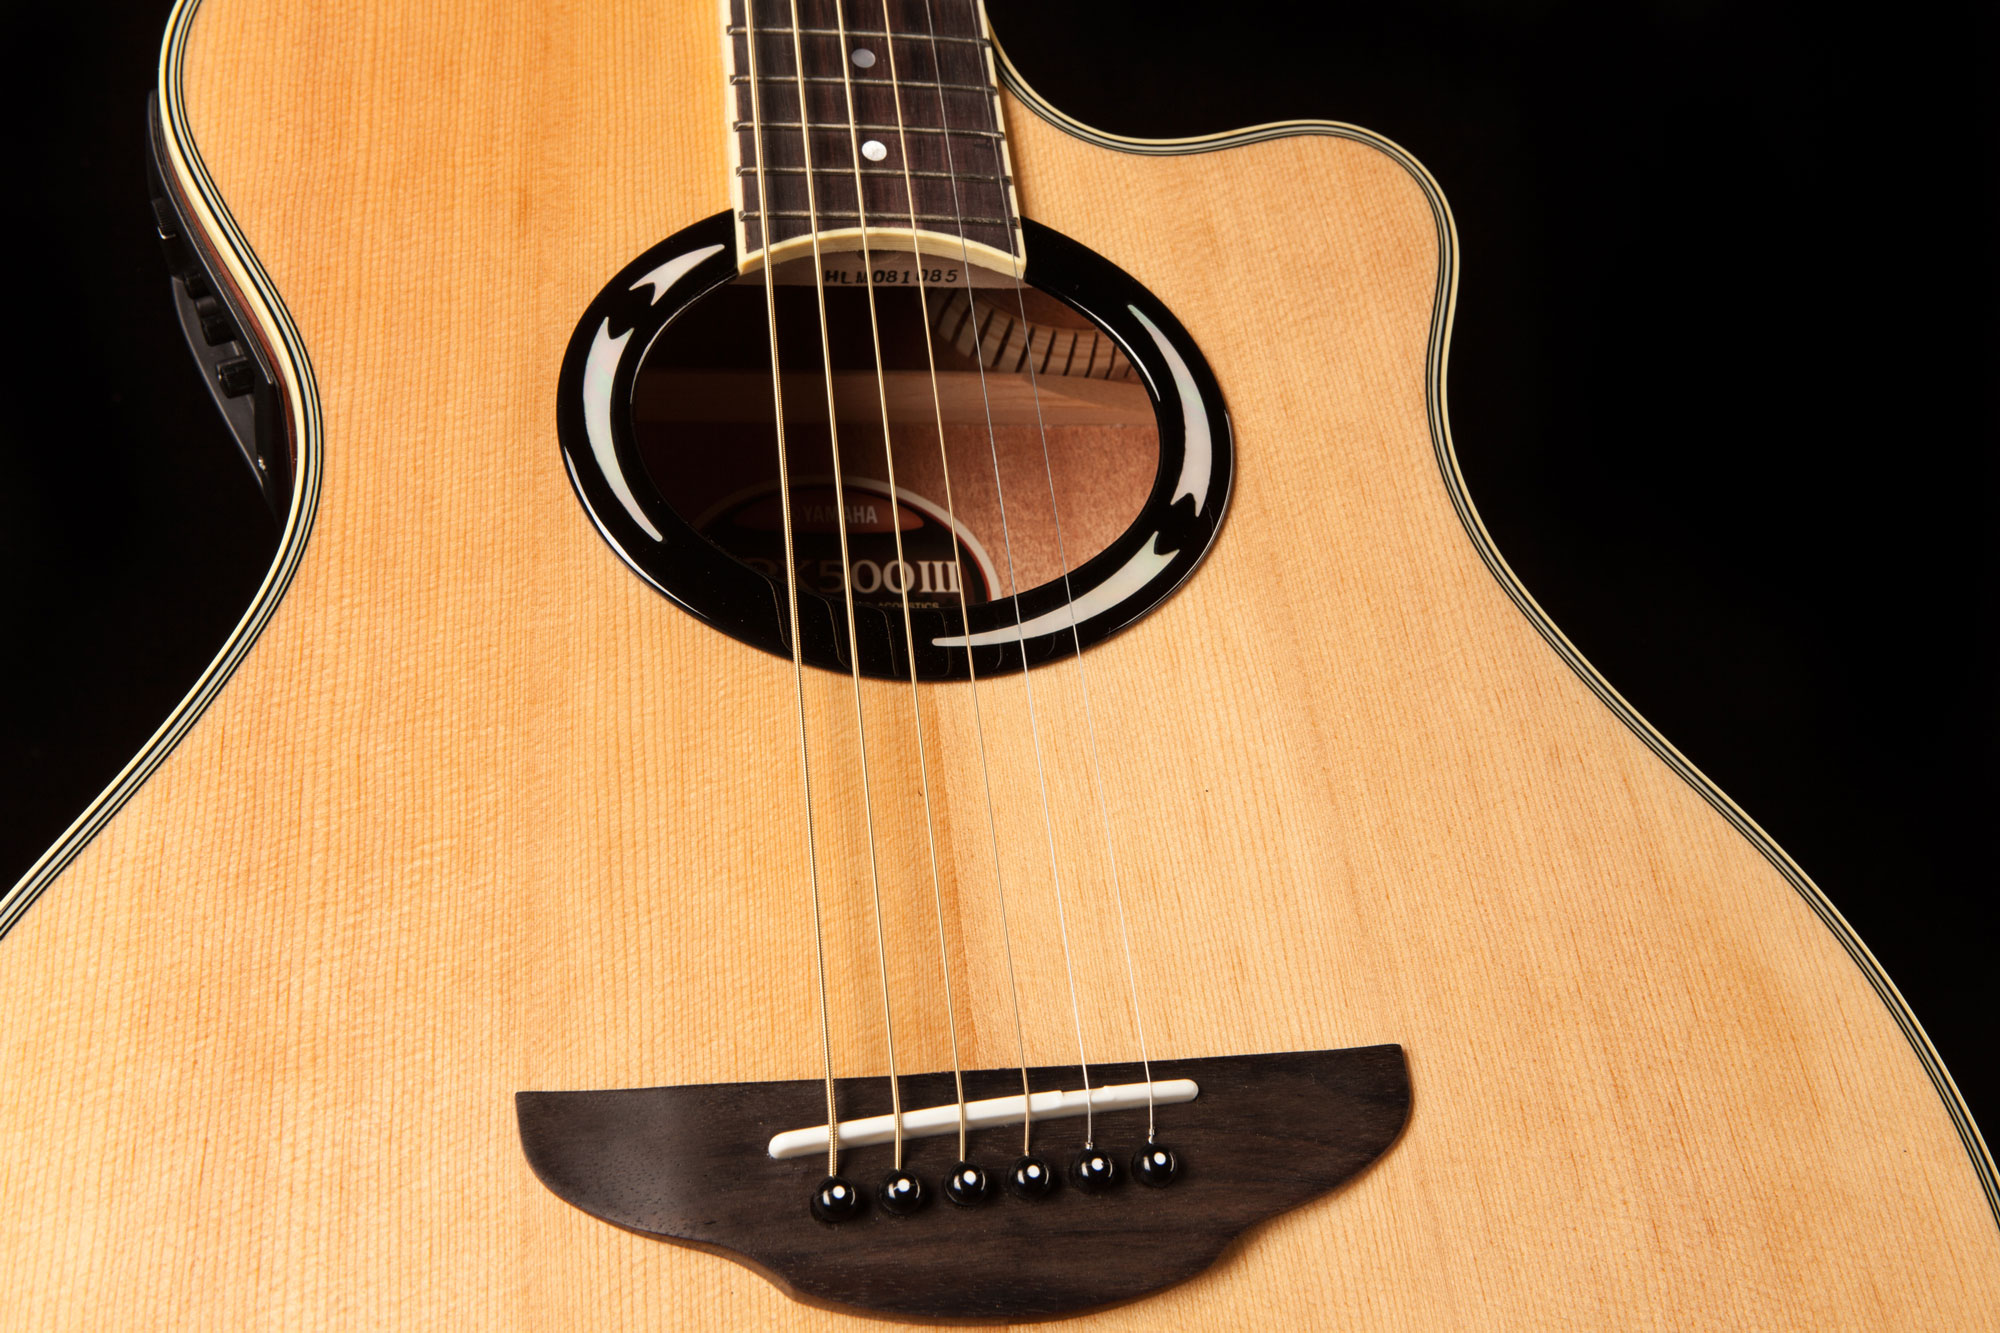 yamaha apx500 mkiii electro acoustic guitar in natural. Black Bedroom Furniture Sets. Home Design Ideas